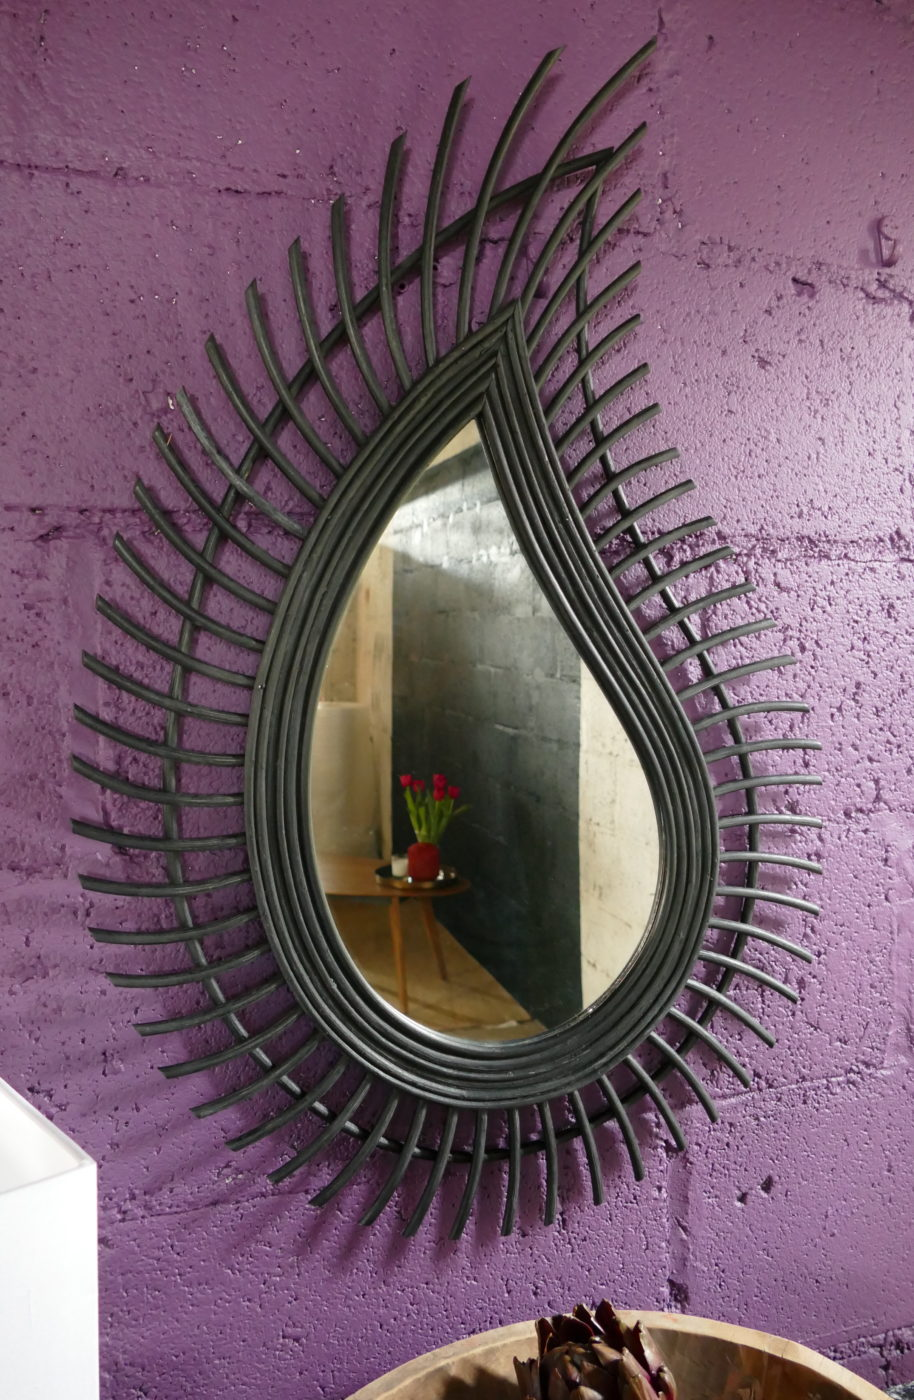 teardrop shaped mirror against purple wall sold by stagers lifetyle